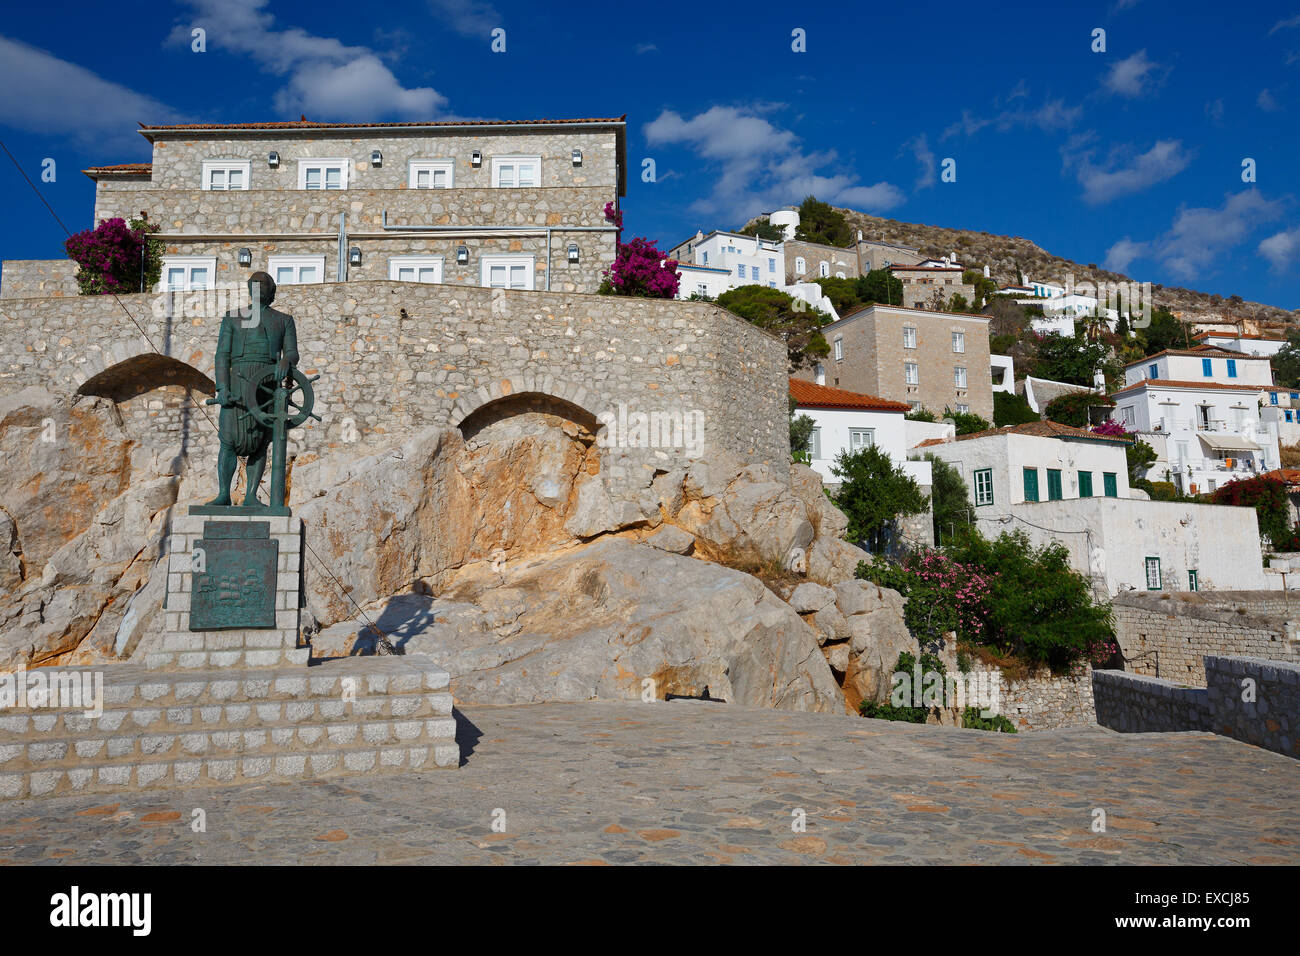 Statue of Admiral Miaoulis hero from the Greek War of Independence - Stock Image